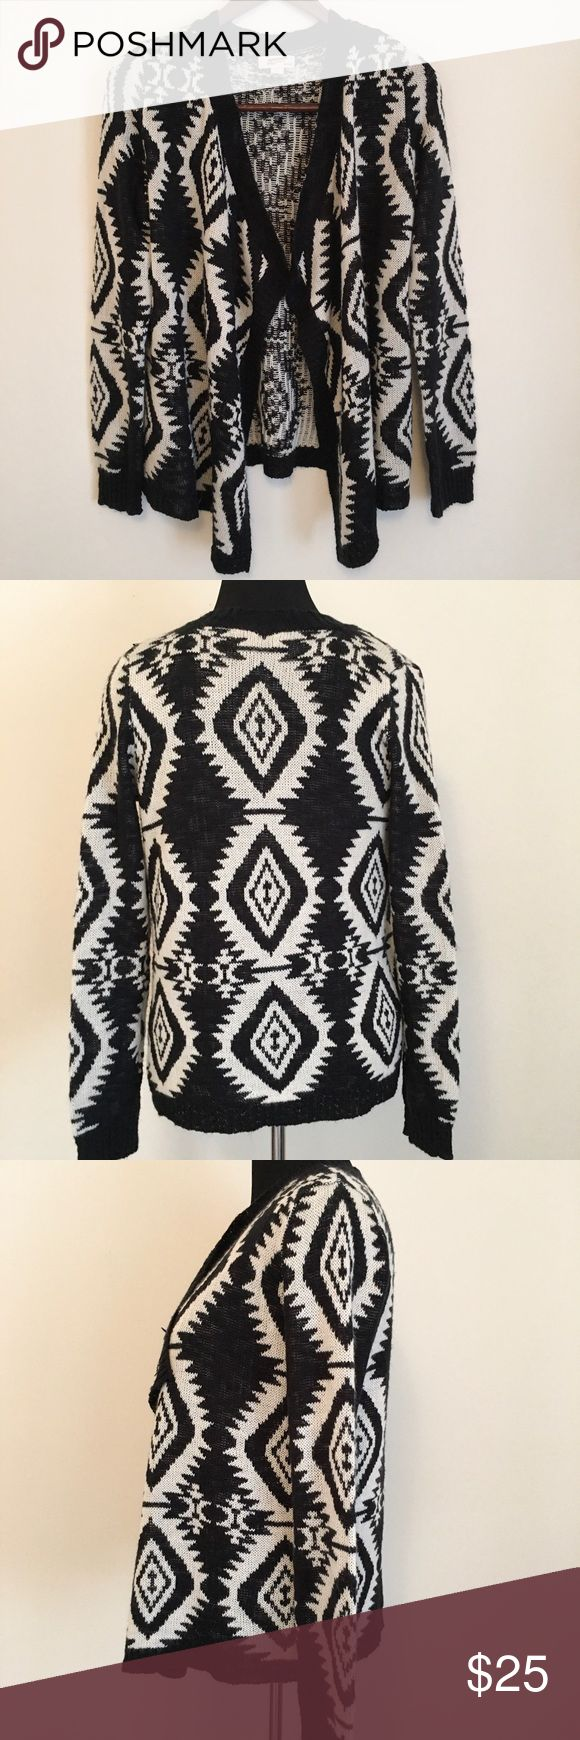 3 for $25Black & White L (Juniors) Cardigan Black and White L (Juniors) Aztec Print Sweater Cardigan  Black and white size large (juniors) Aztec print open front sweater cardigan.   100% Acrylic  In good, gently used condition  #E1 Arizona Jean Company Sweaters Cardigans